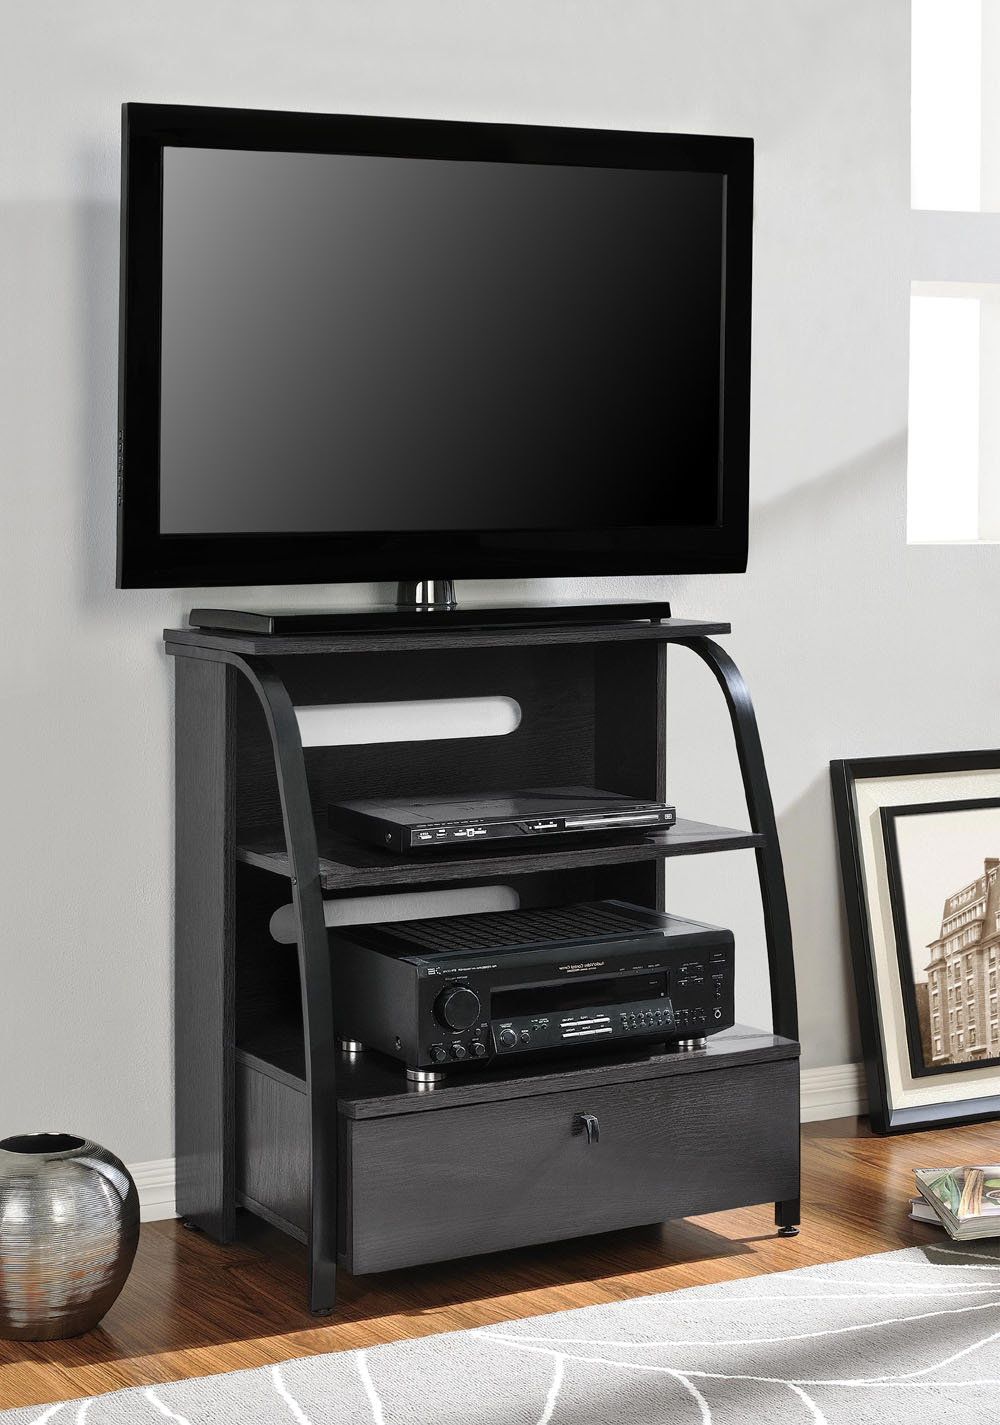 Well Liked Tall Narrow Tv Stands For Tall Narrow Tv Stand For Bedroom On Bedroom Corner Tv Stand Tall (View 12 of 20)